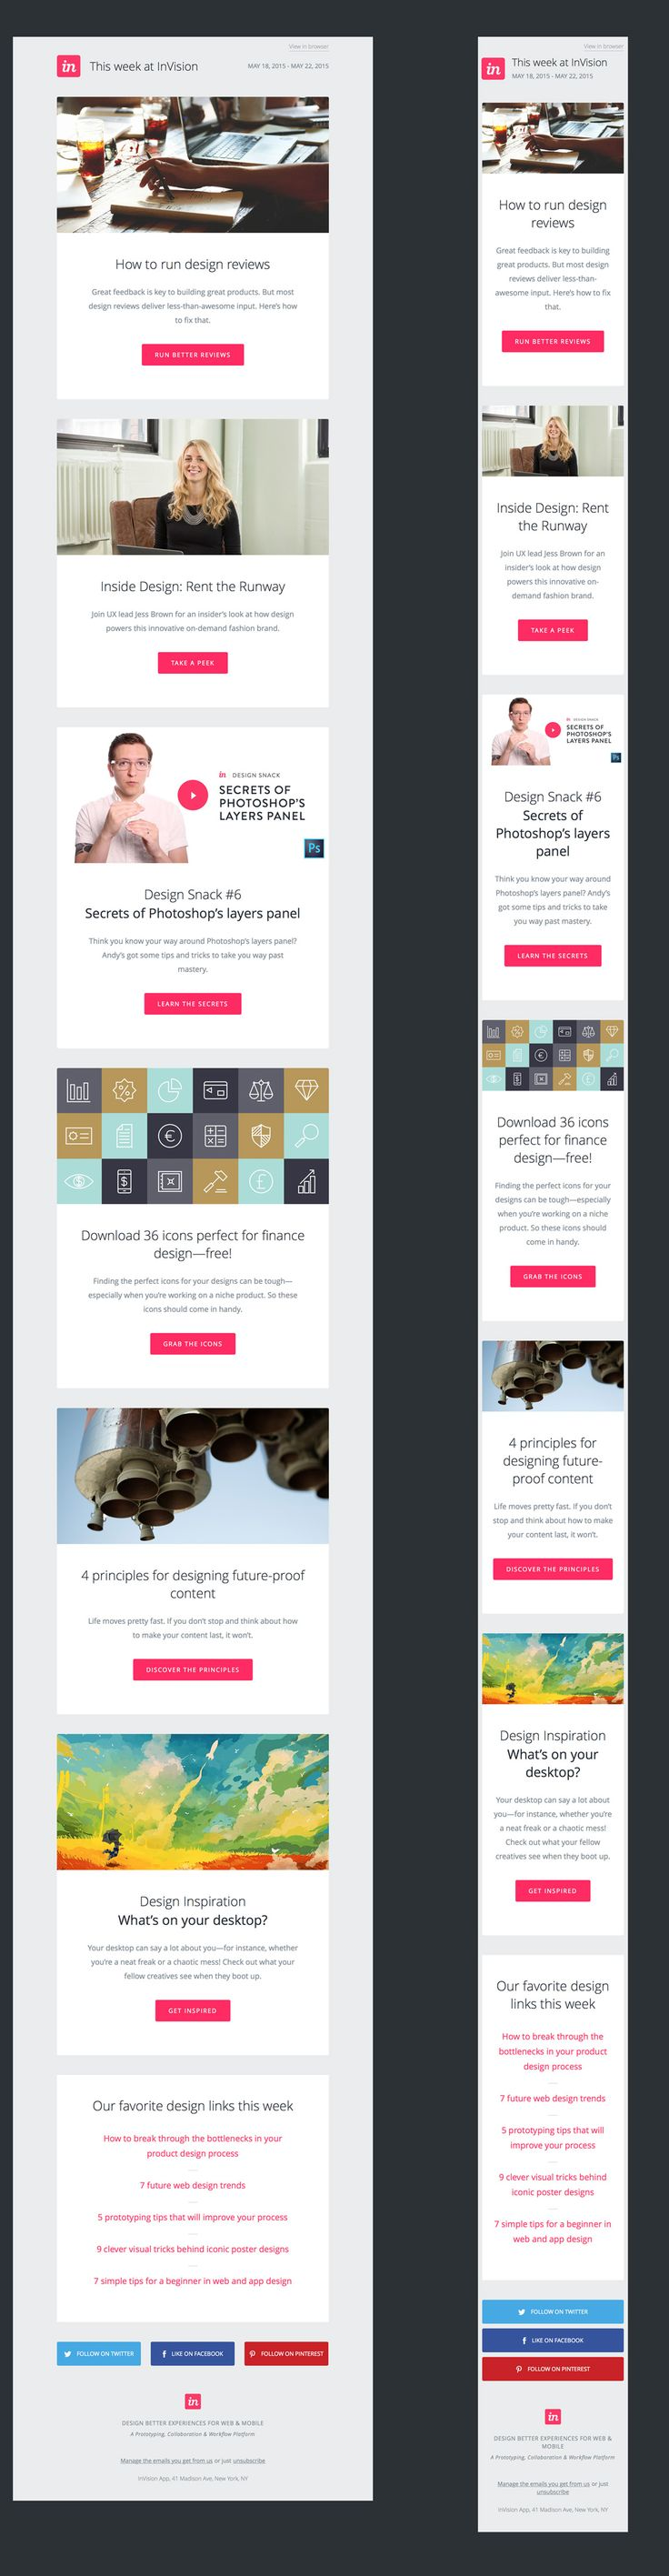 Best 25+ Responsive email ideas on Pinterest